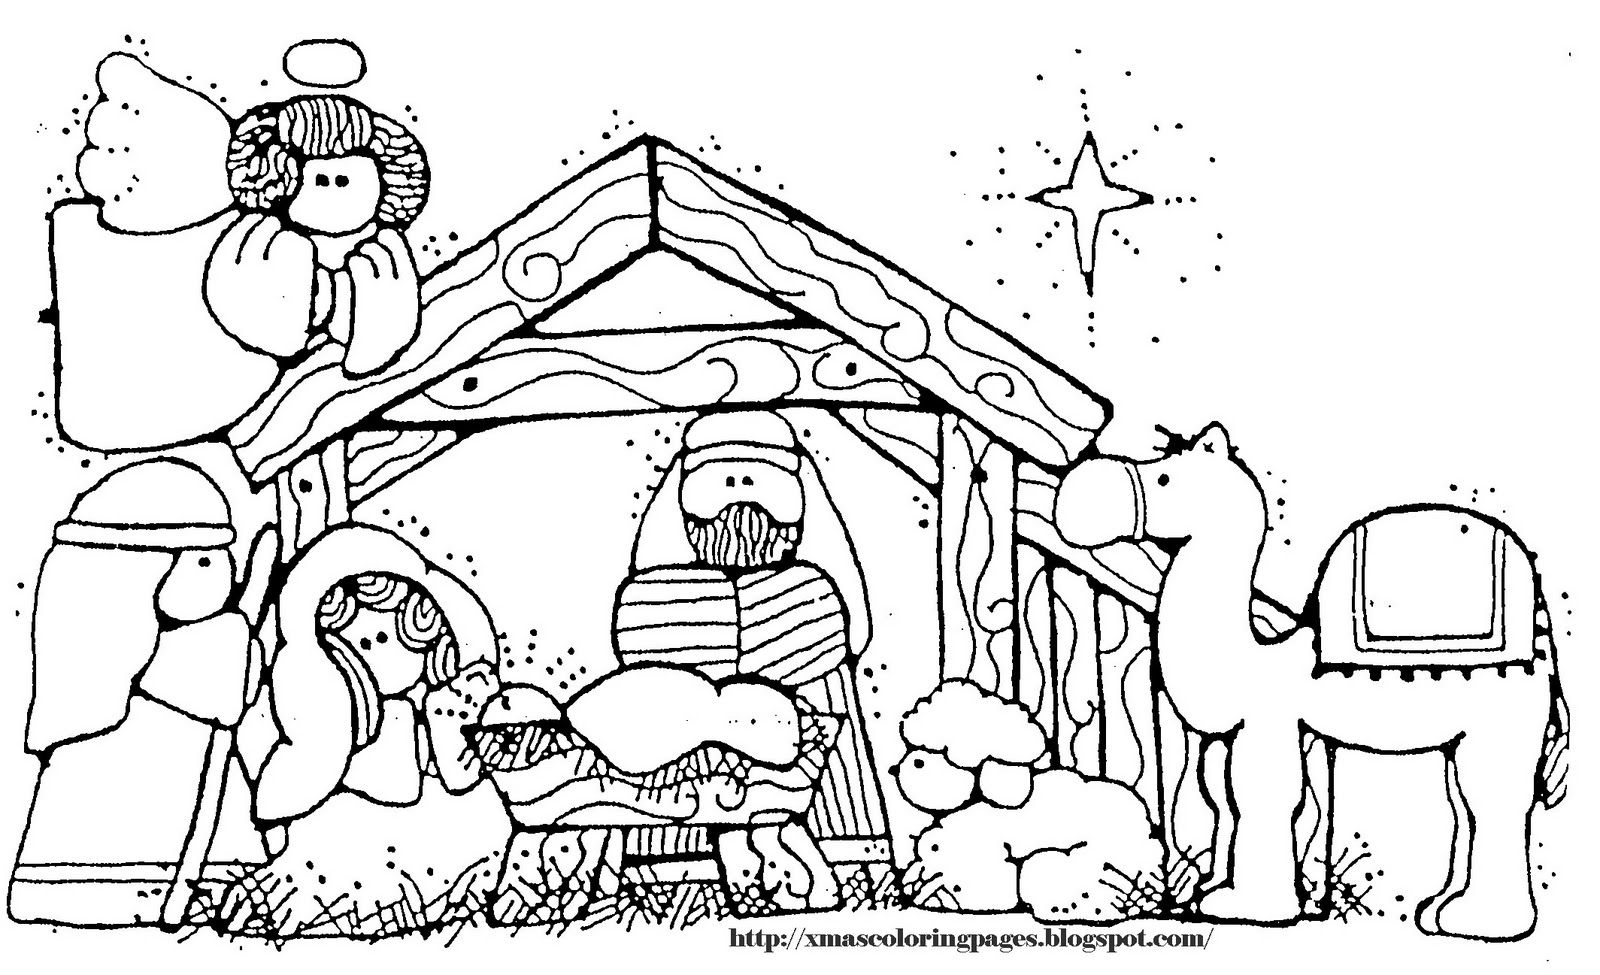 Christmas Coloring Pages Jesus In 2020 Nativity Coloring Jesus Coloring Pages Nativity Coloring Pages